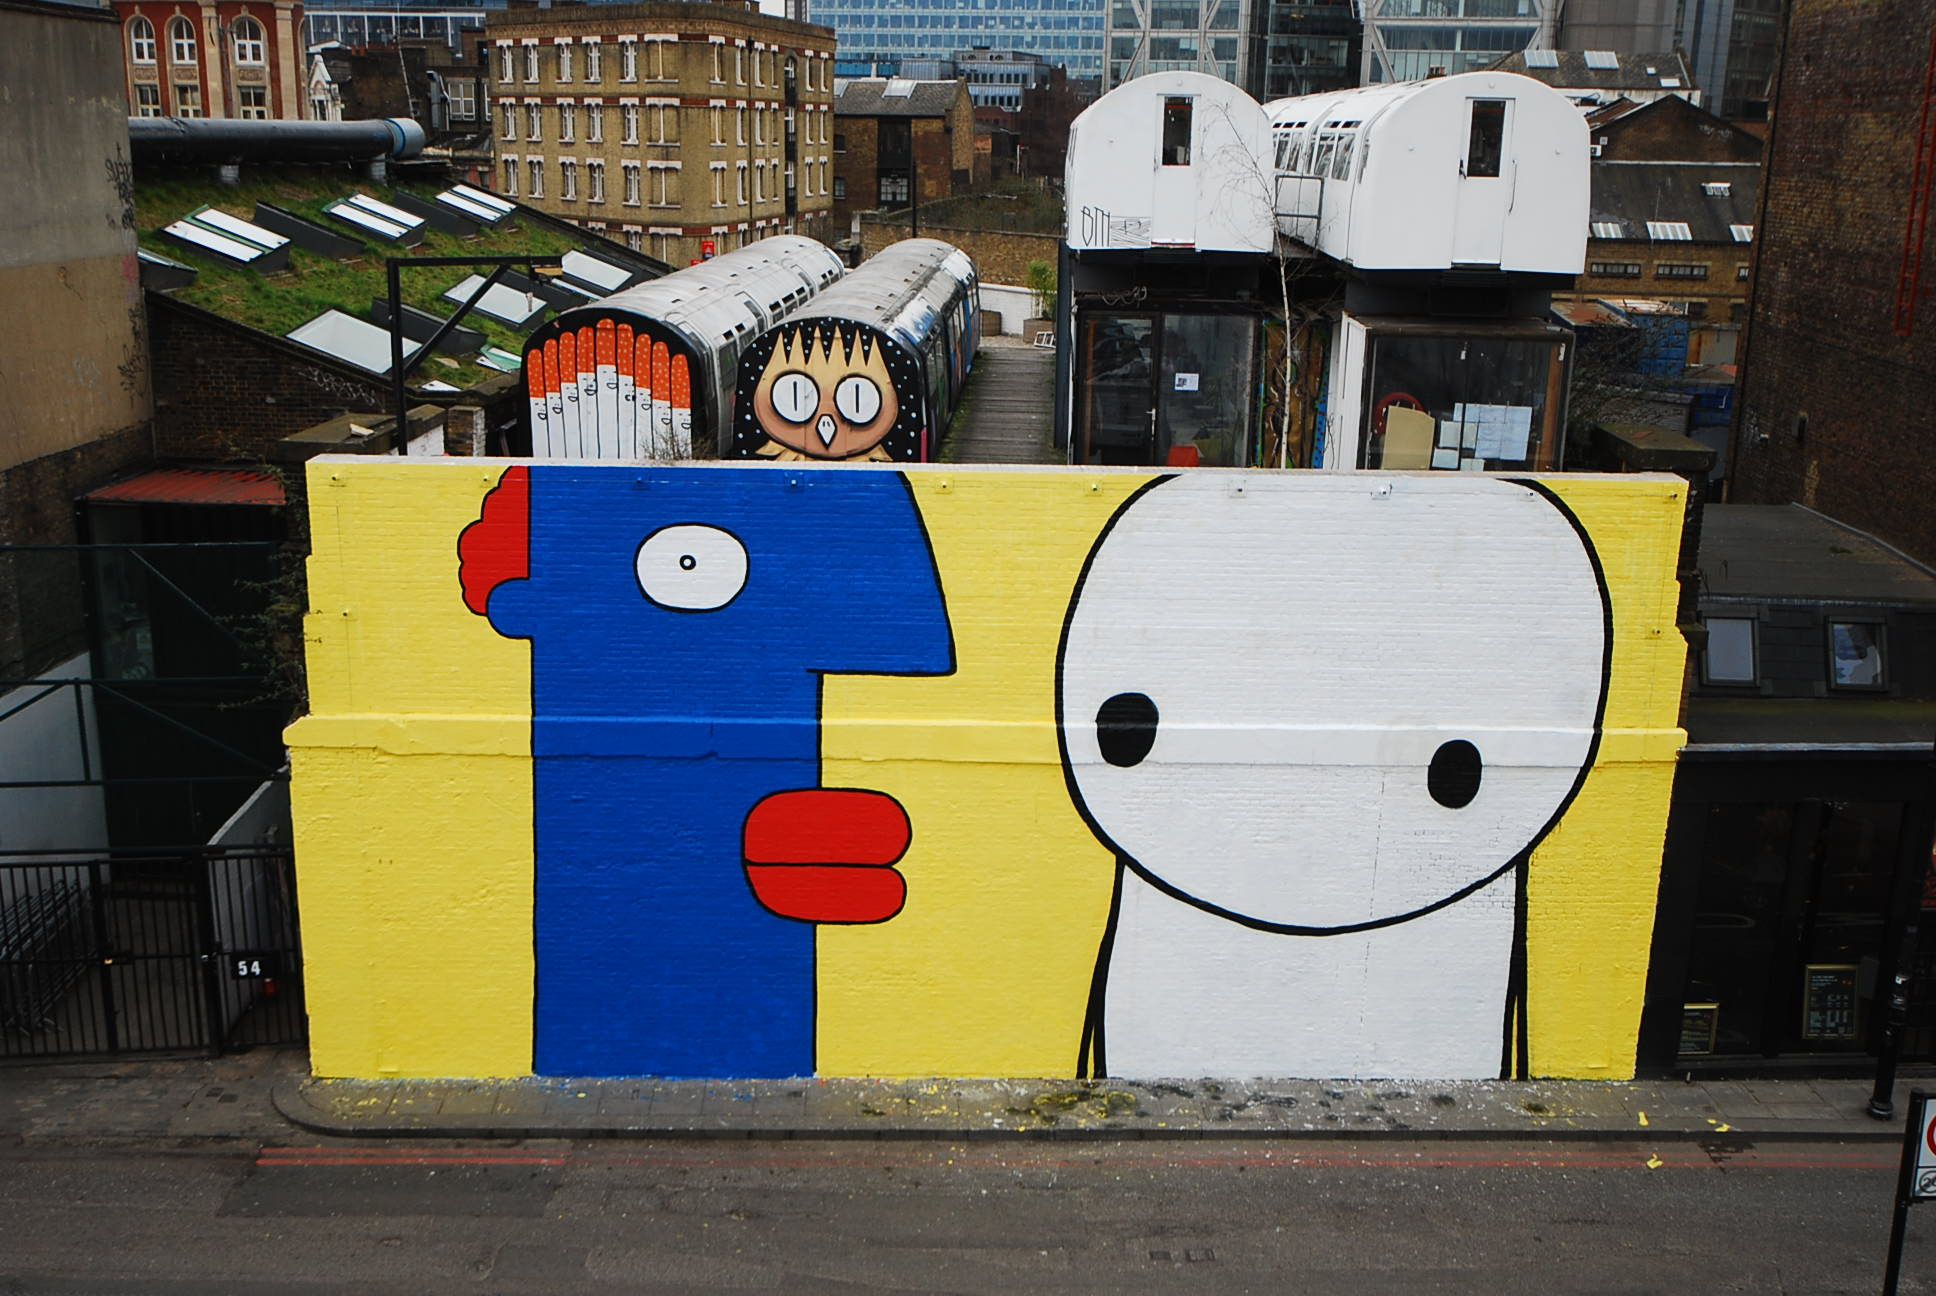 Thierry Noir and Stik's historic collaboration on The Village Underground Wall in Shoreditch, London, February 2013.